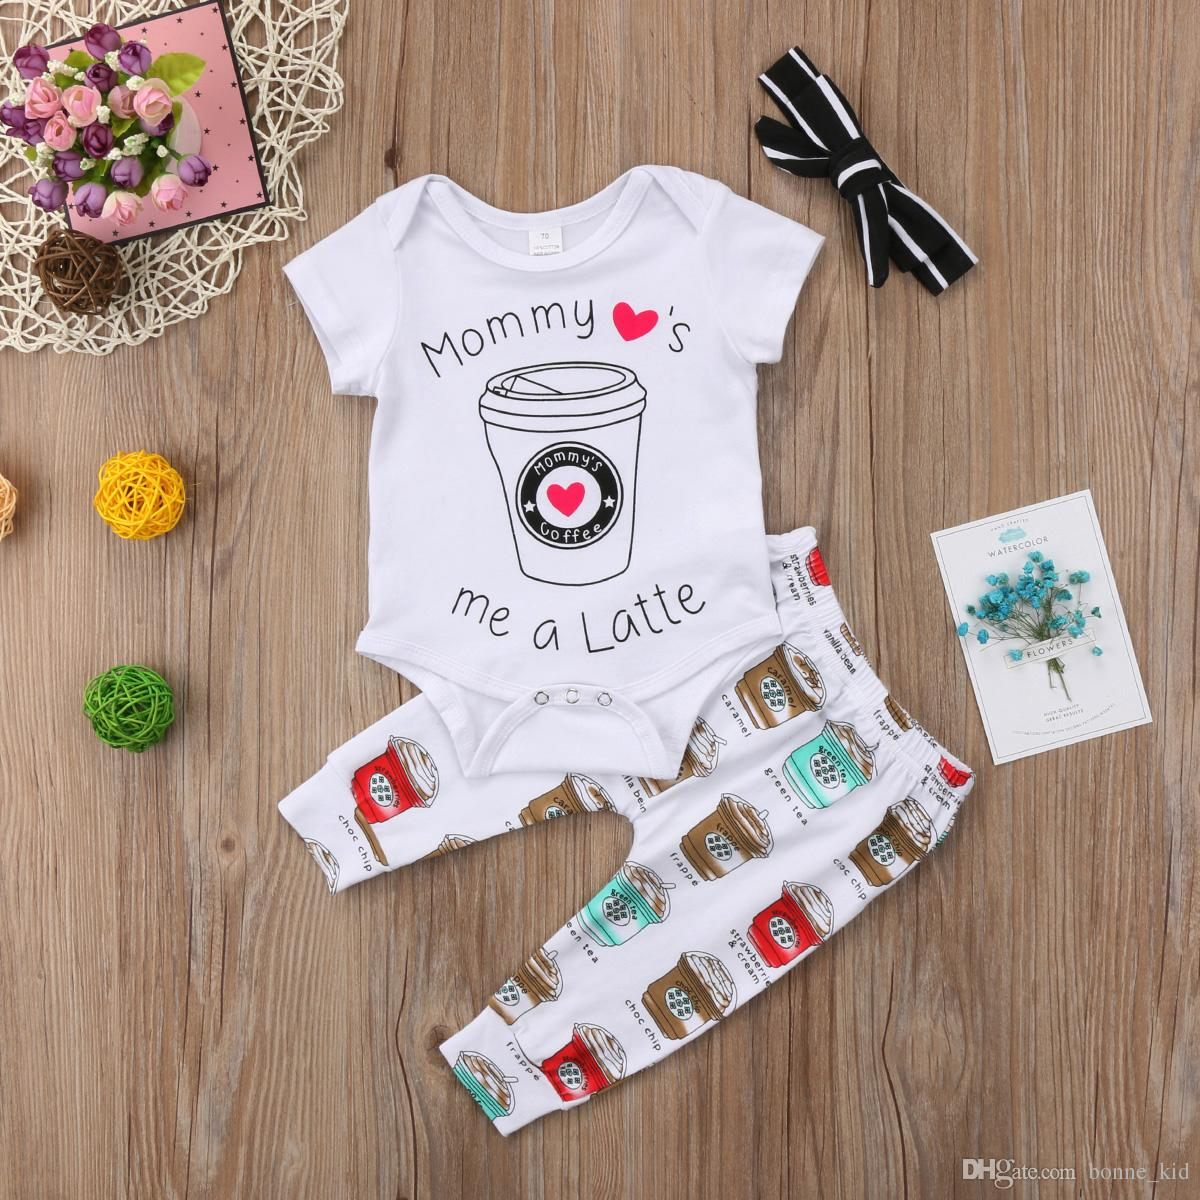 da0b04d92da 2019 Cute Newborn Baby Boy Girl Toddler Ice Cream Romper Top Long Pants  Leggings Headband Outfit Toddler Boys Girls Clothes Kid Clothing Set From  Bonne kid